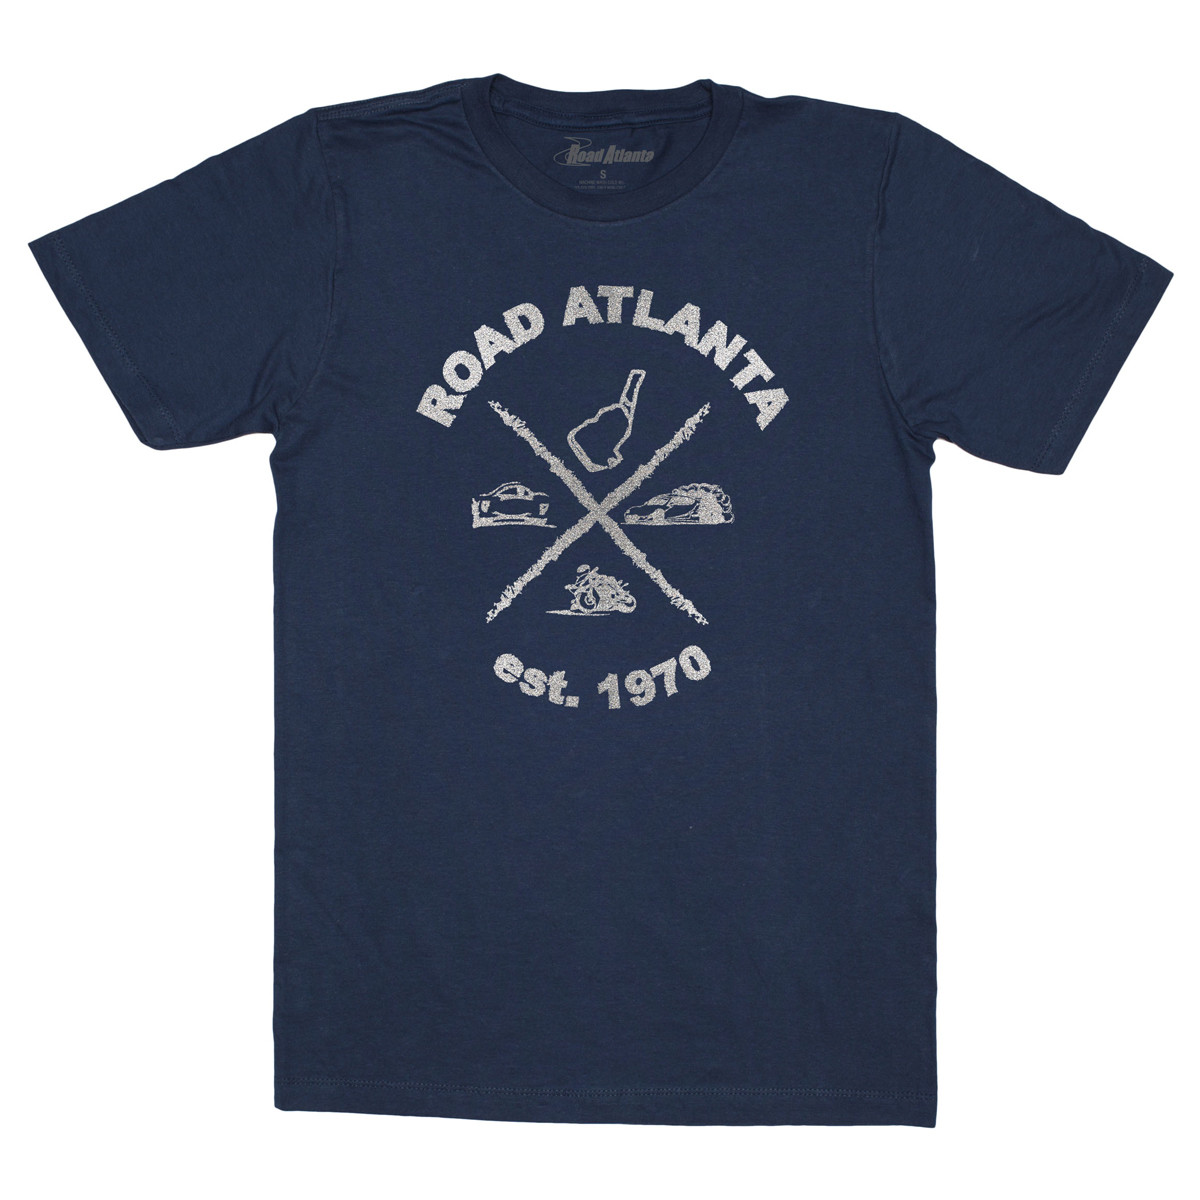 Road Atlanta All Track Tee - Navy